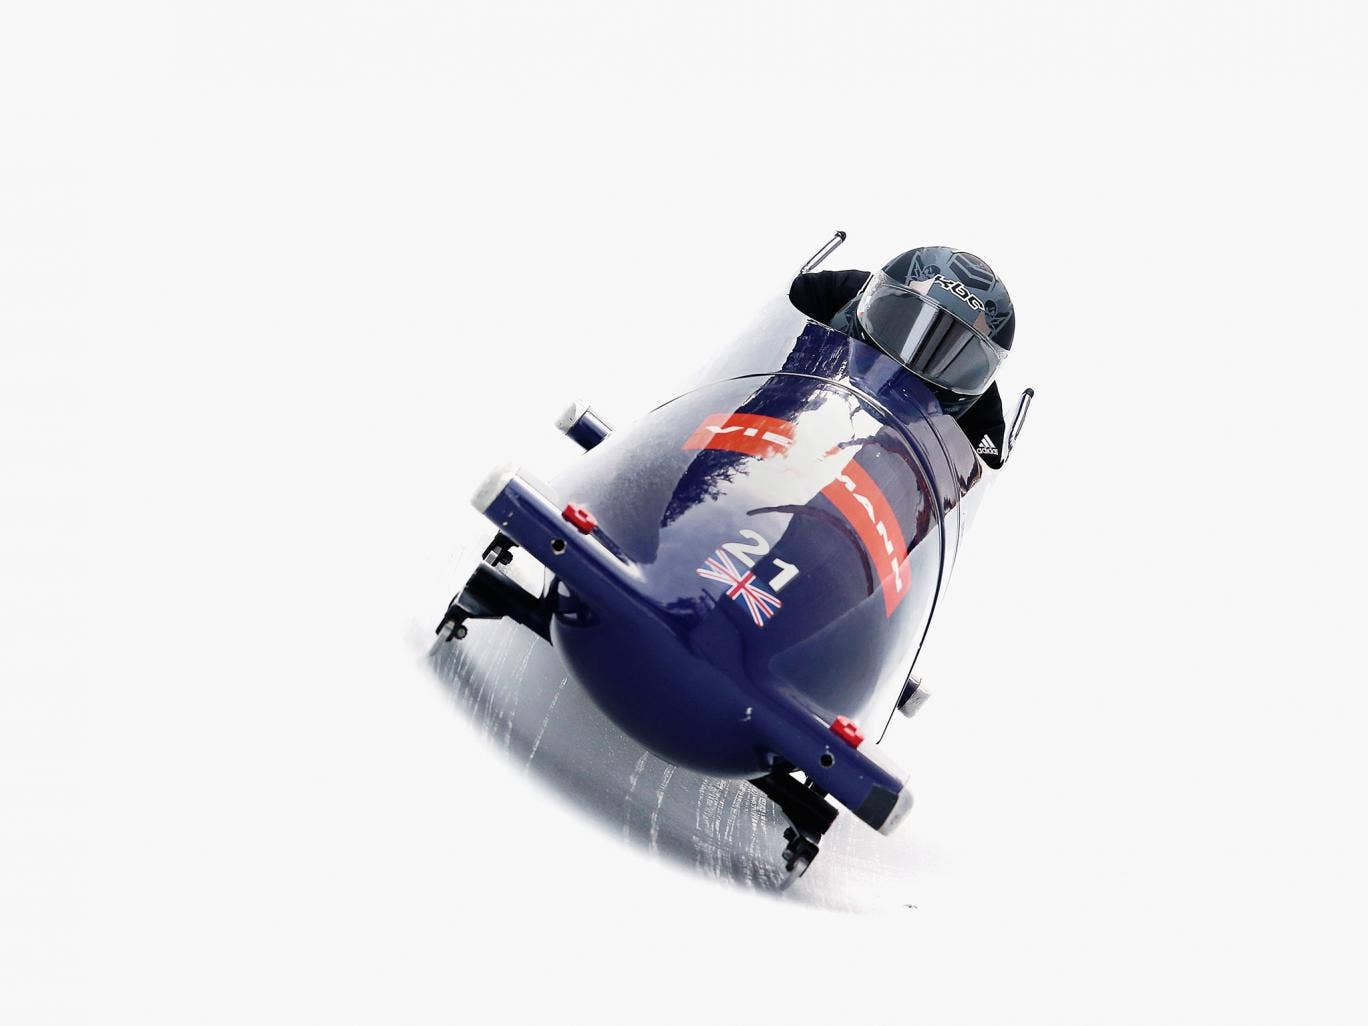 Team GB's bobsledding competitors benefit from the same state-of-the art BAE Systems technology that goes into, say, BAE-designed tanks